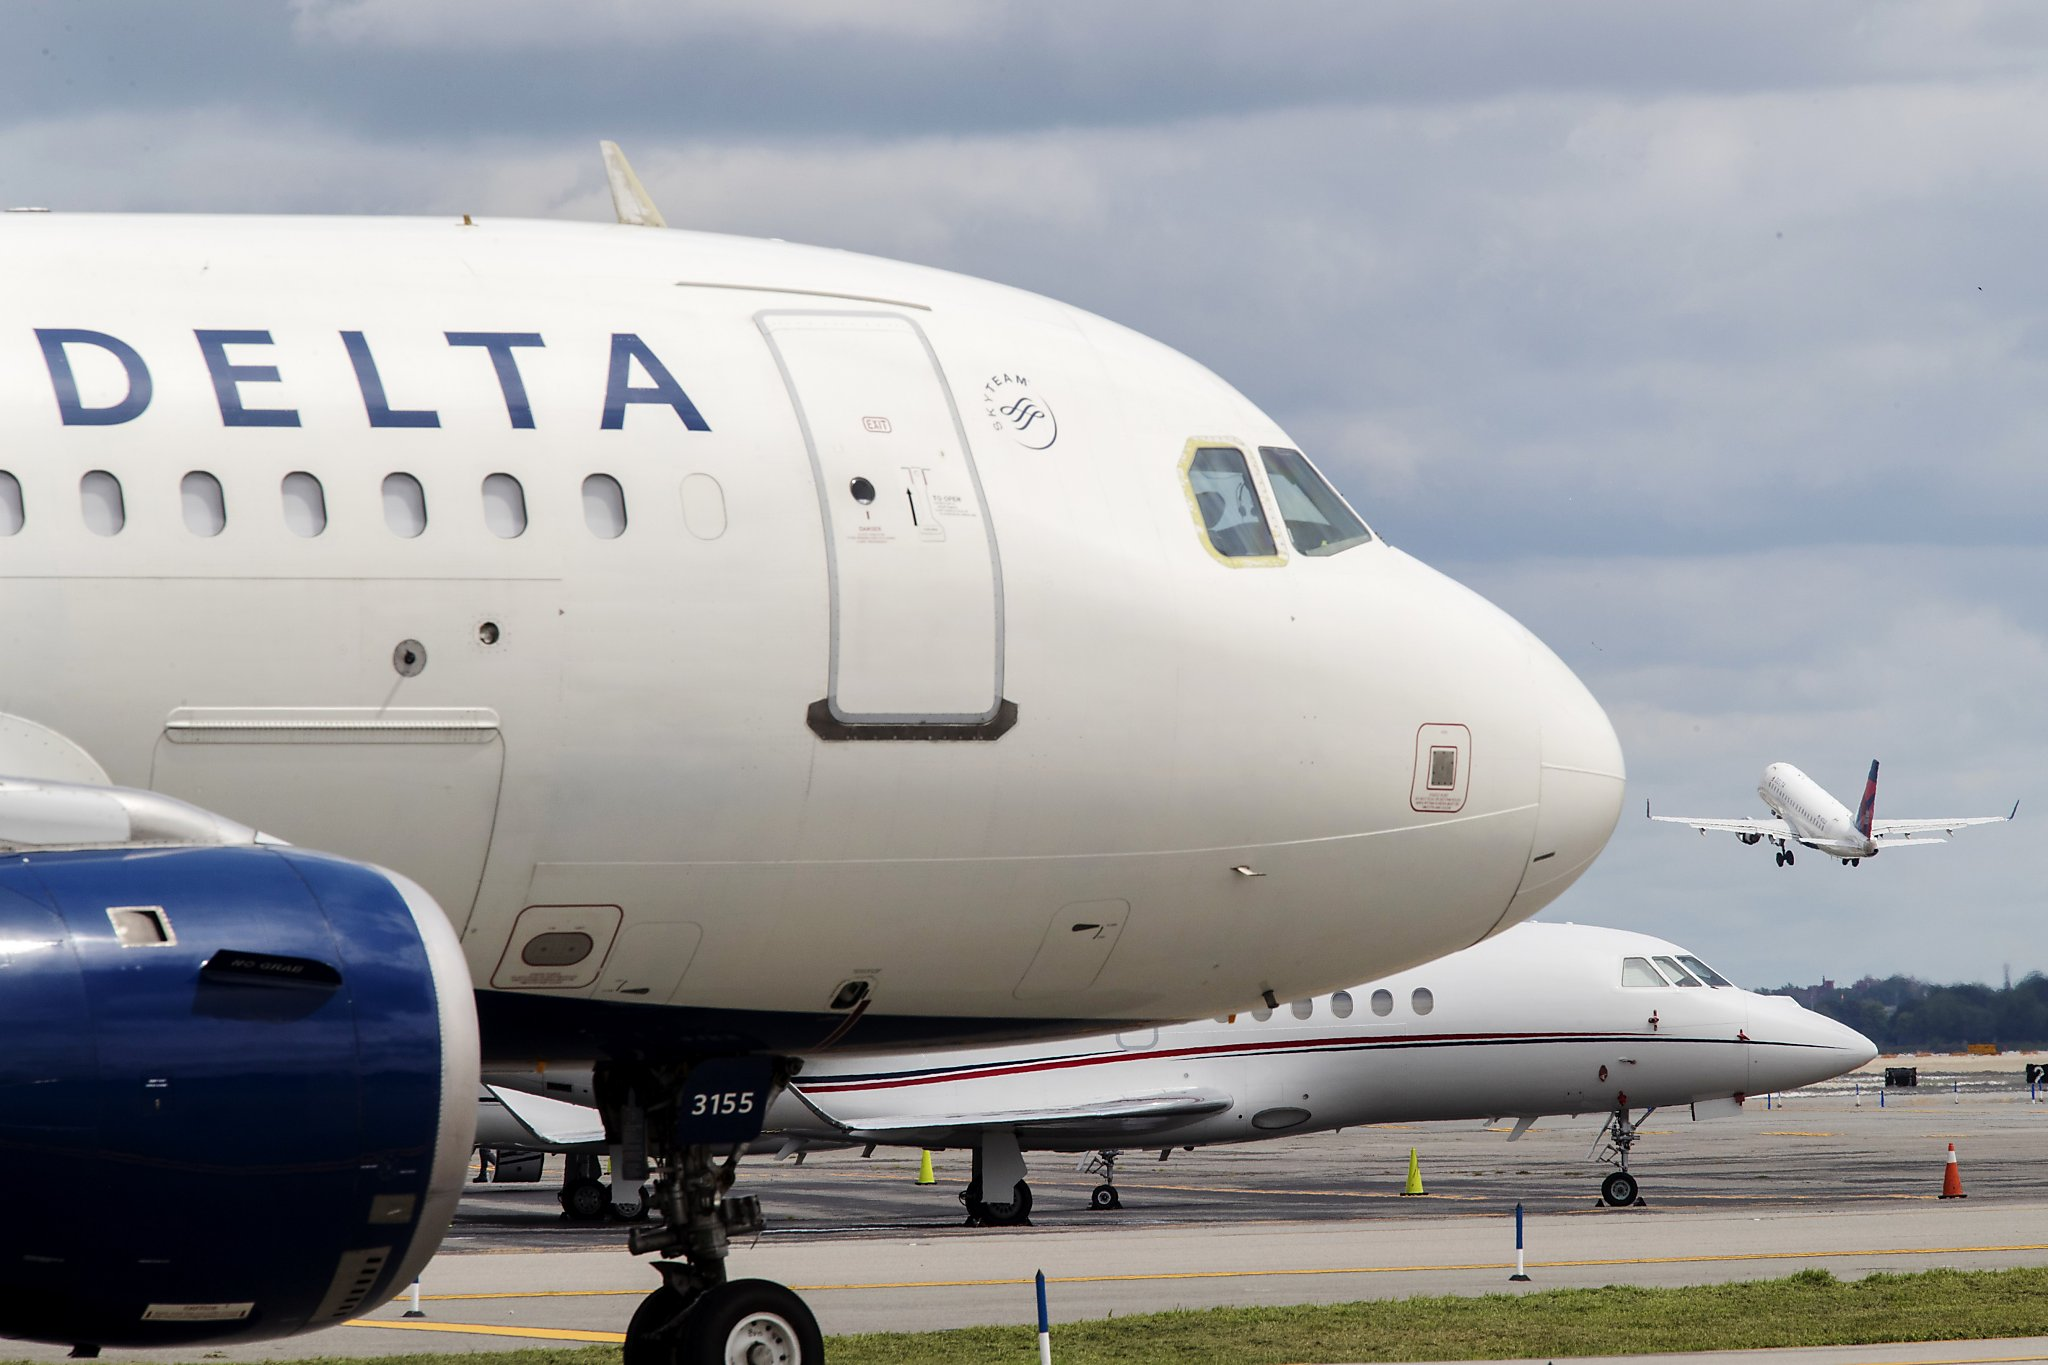 A Delta plane's engine failed and glowed orange mid-flight, as scared passengers watched